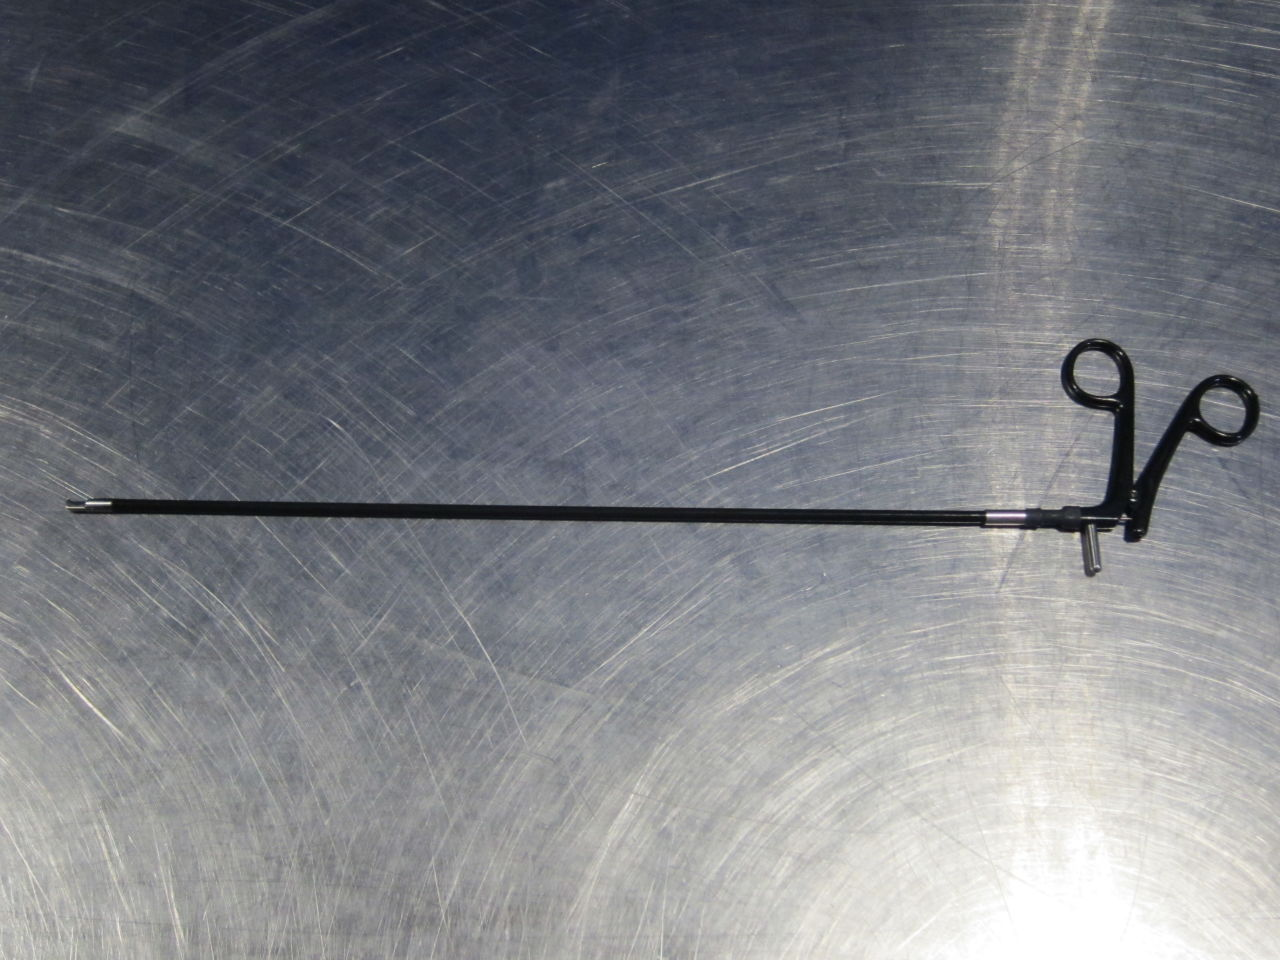 OLYMPUS Various Surgical Tools